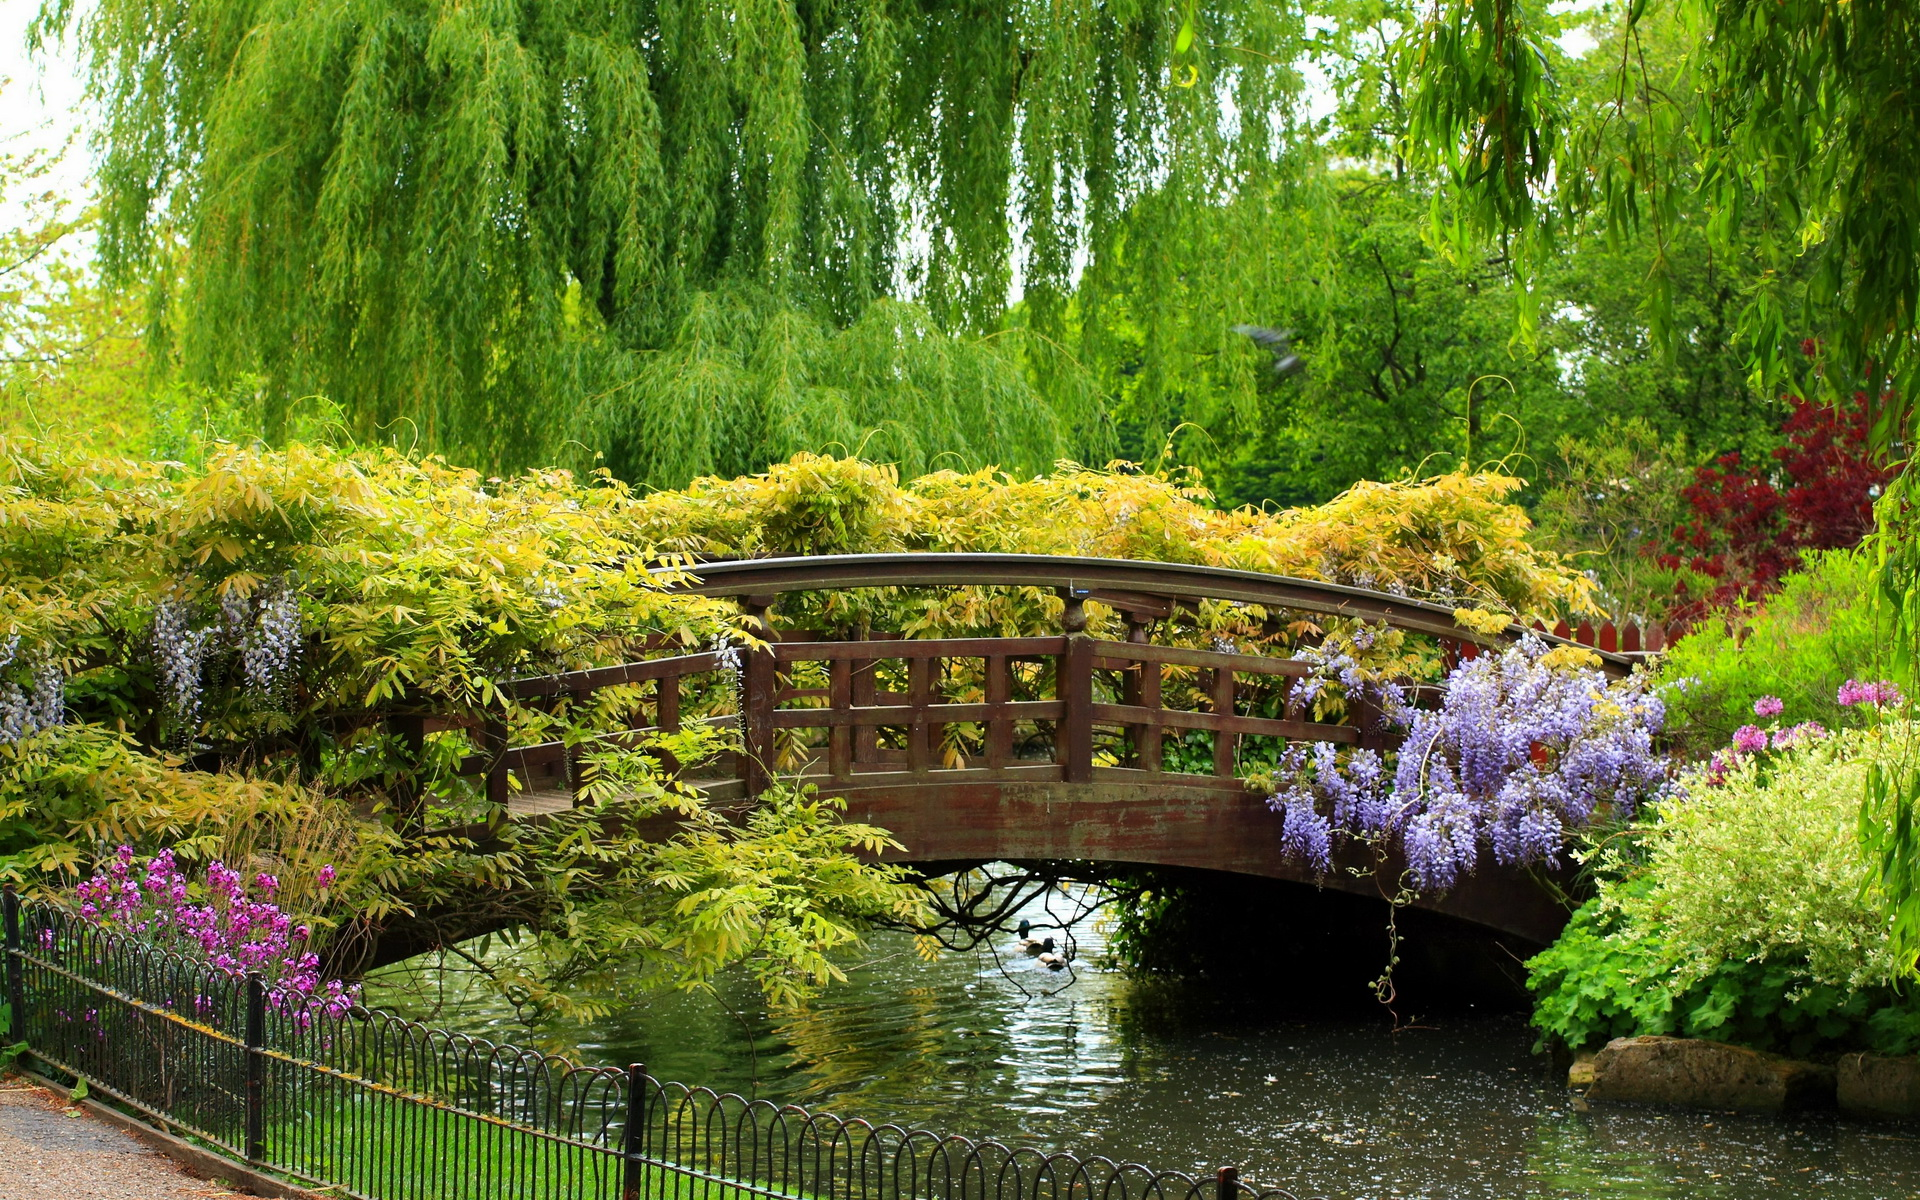 Beautiful-Decorations-Garden-Bridge-For-Your-Inspirations-Design-Queen-Marys-Garden-Bridge-Path-Willow-Park-Tree-Hd-Wallpaper